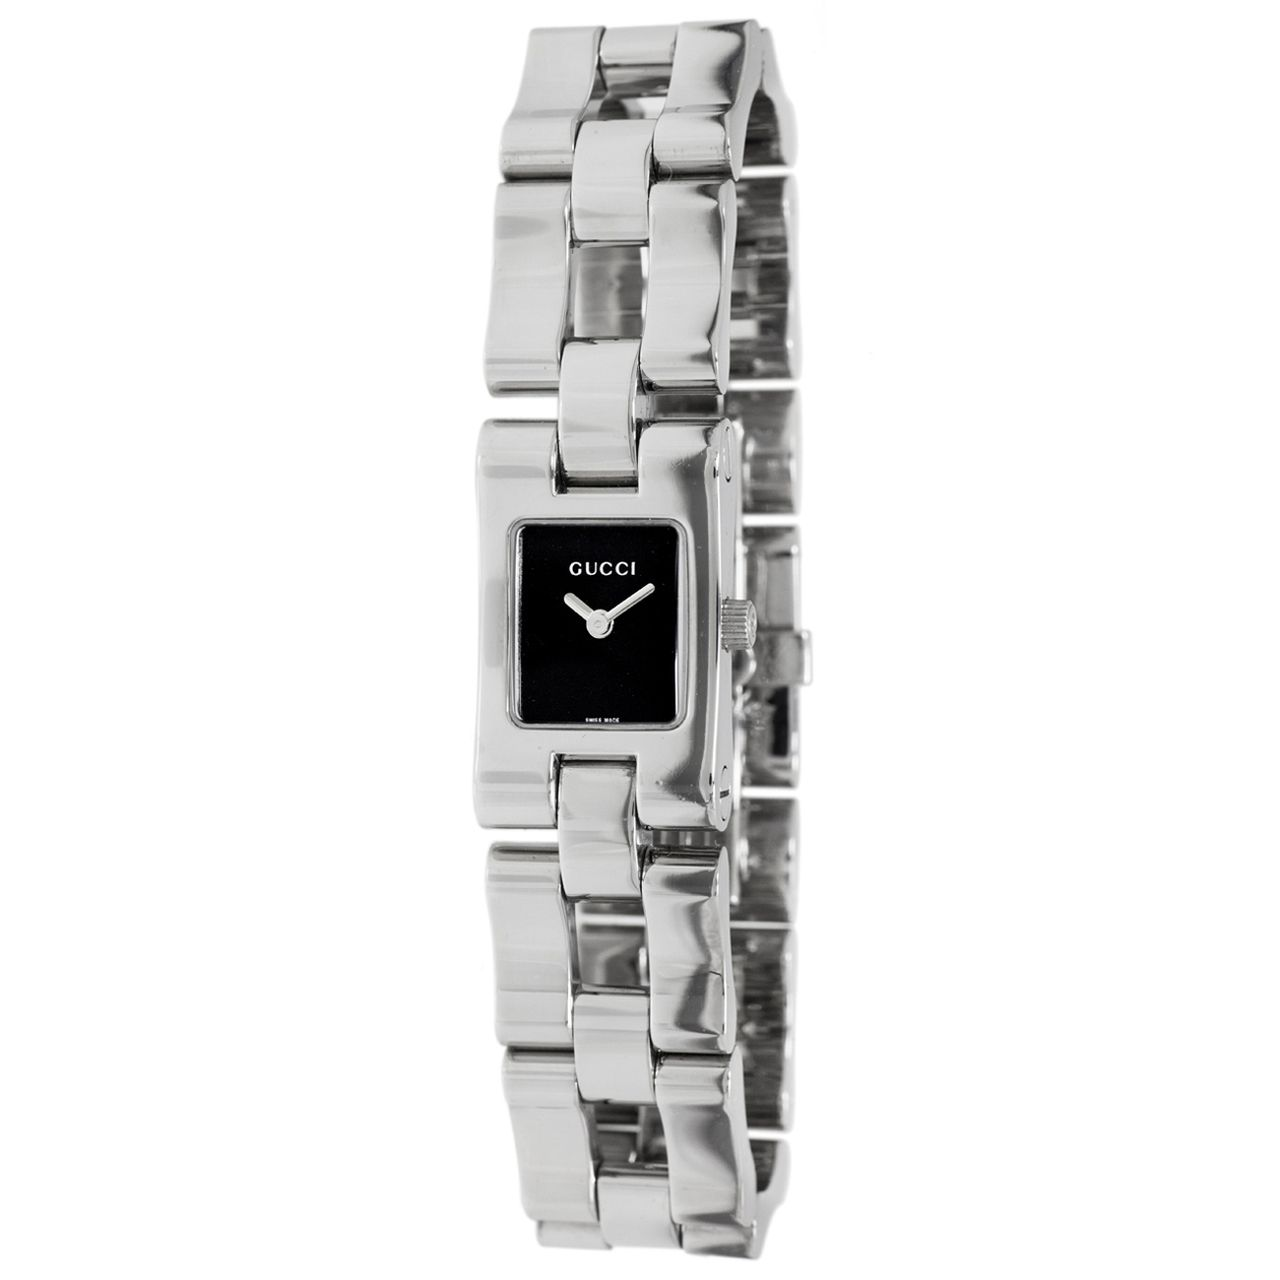 848a9375453 Gucci Stainless Steel 2305L Ladies Watch - modaselle